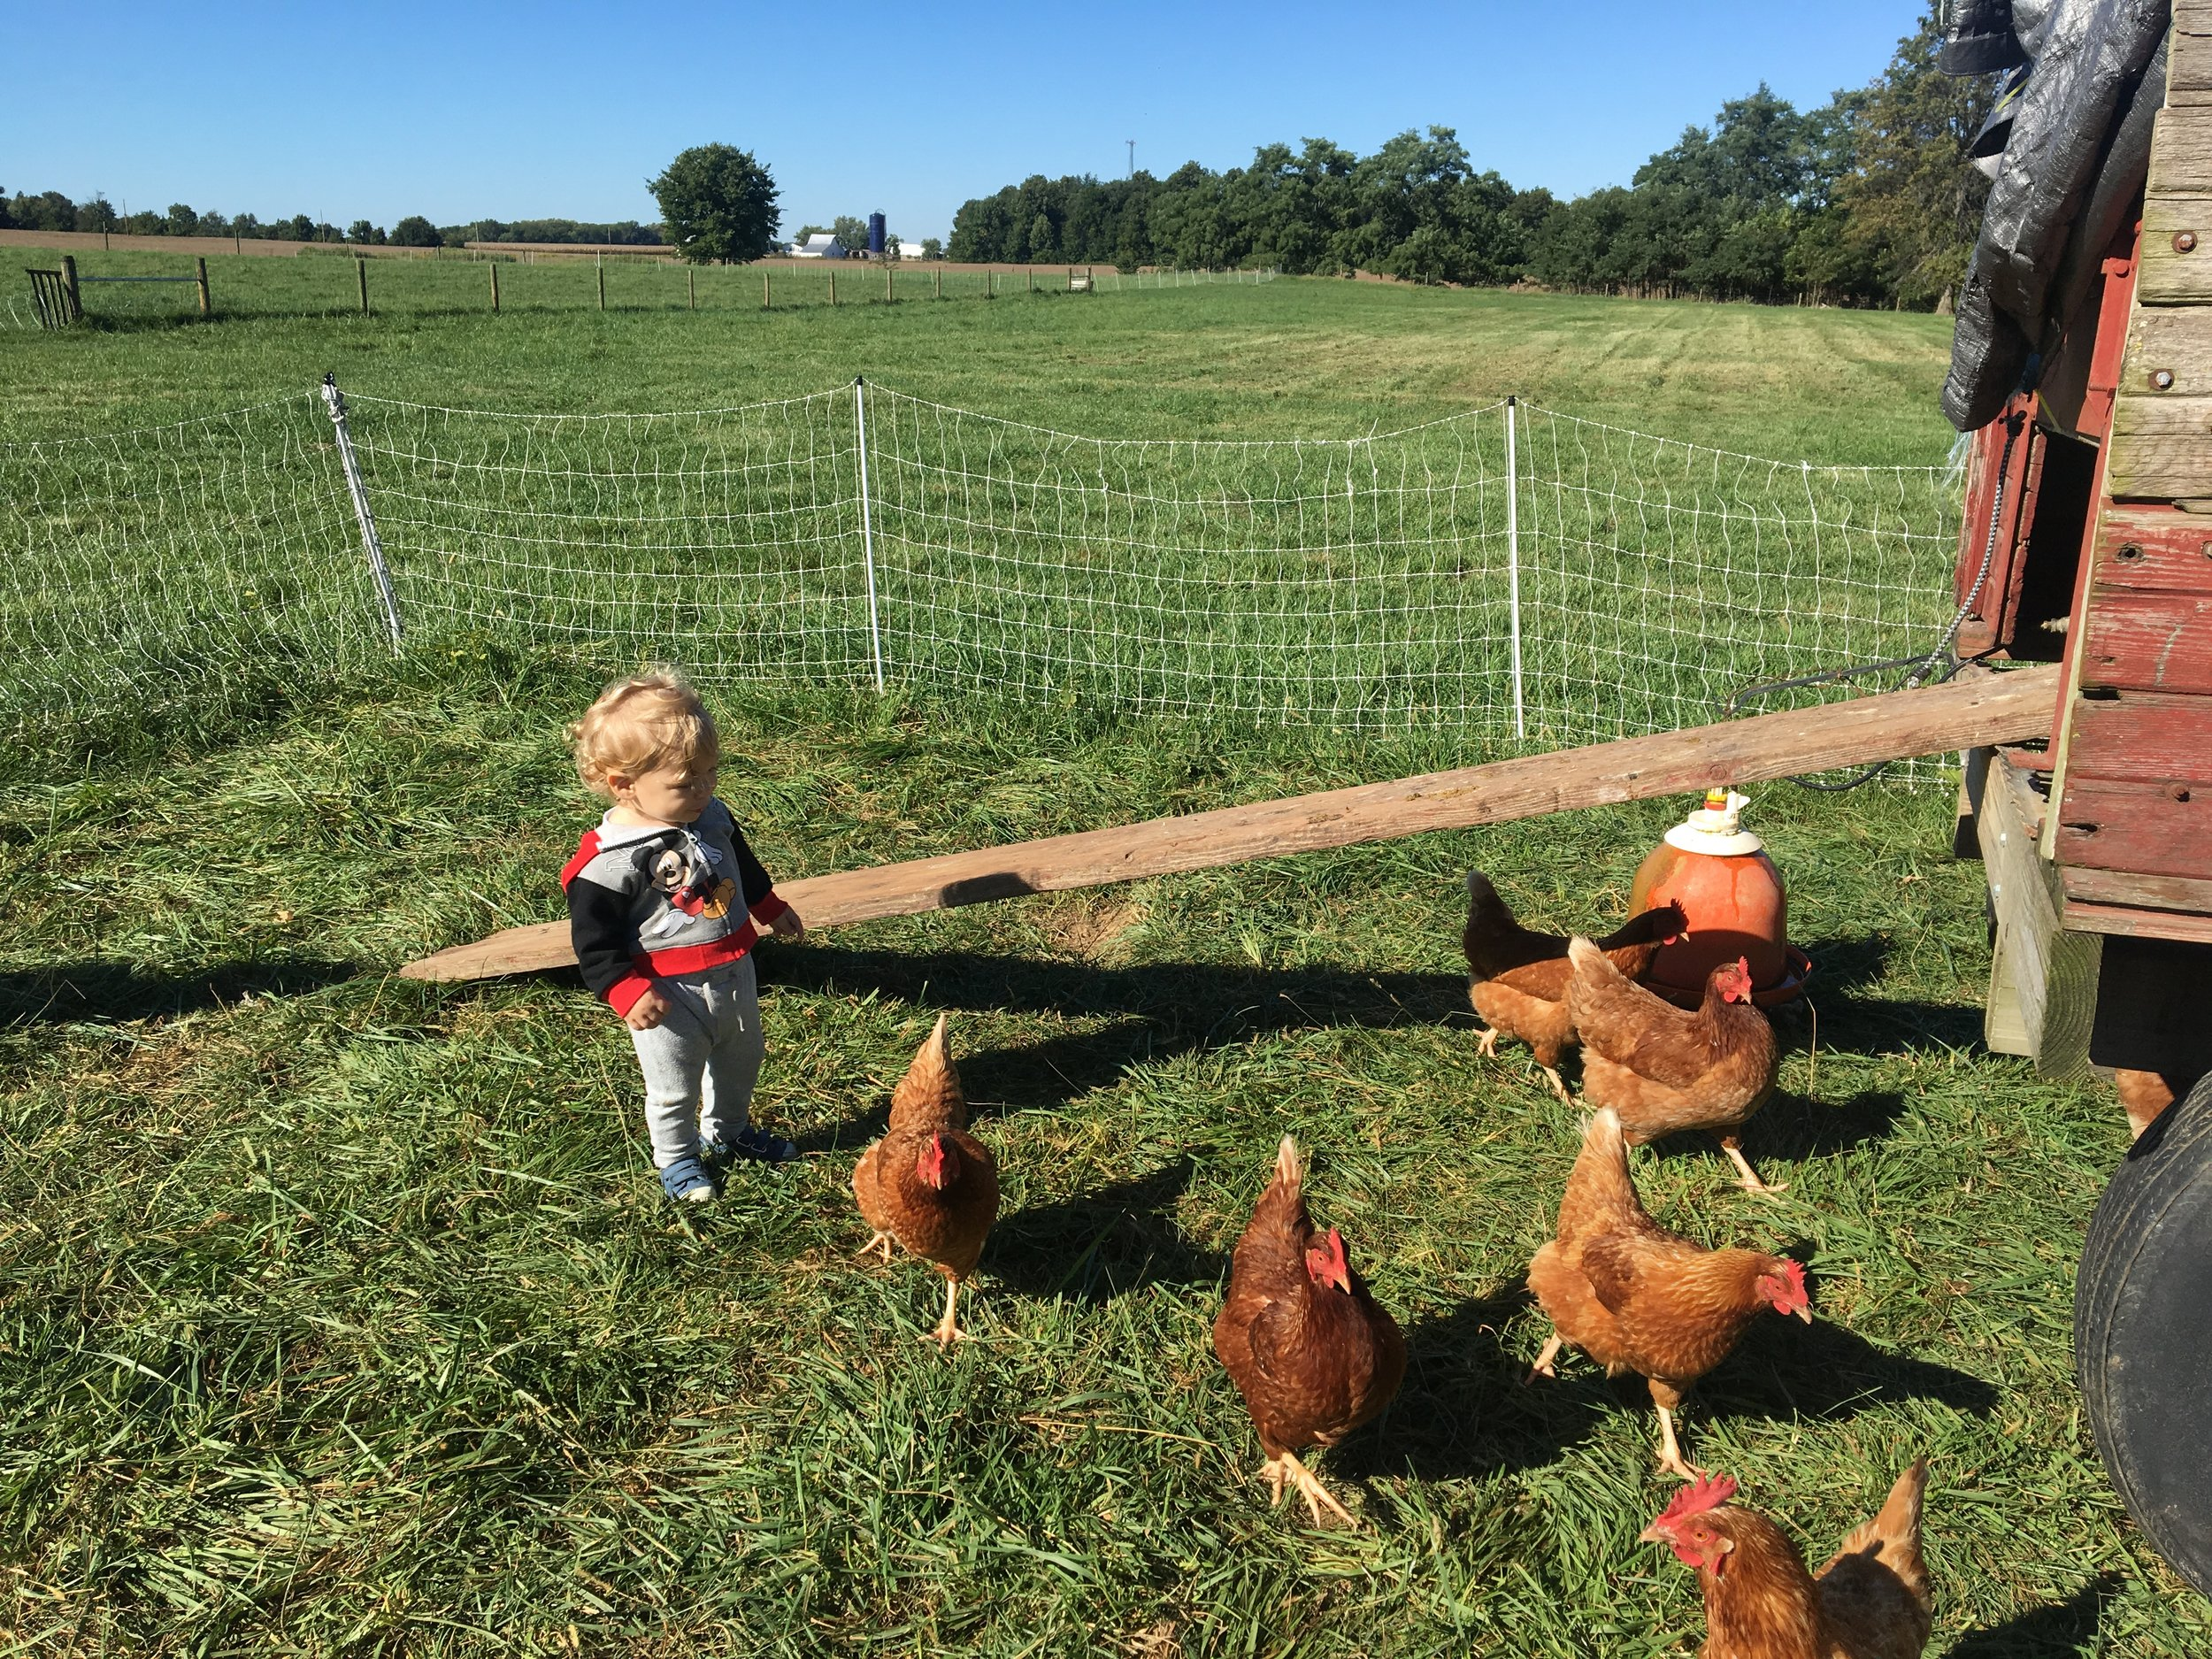 Hanging out with some chickens at Nana and Pop Pop's farm.